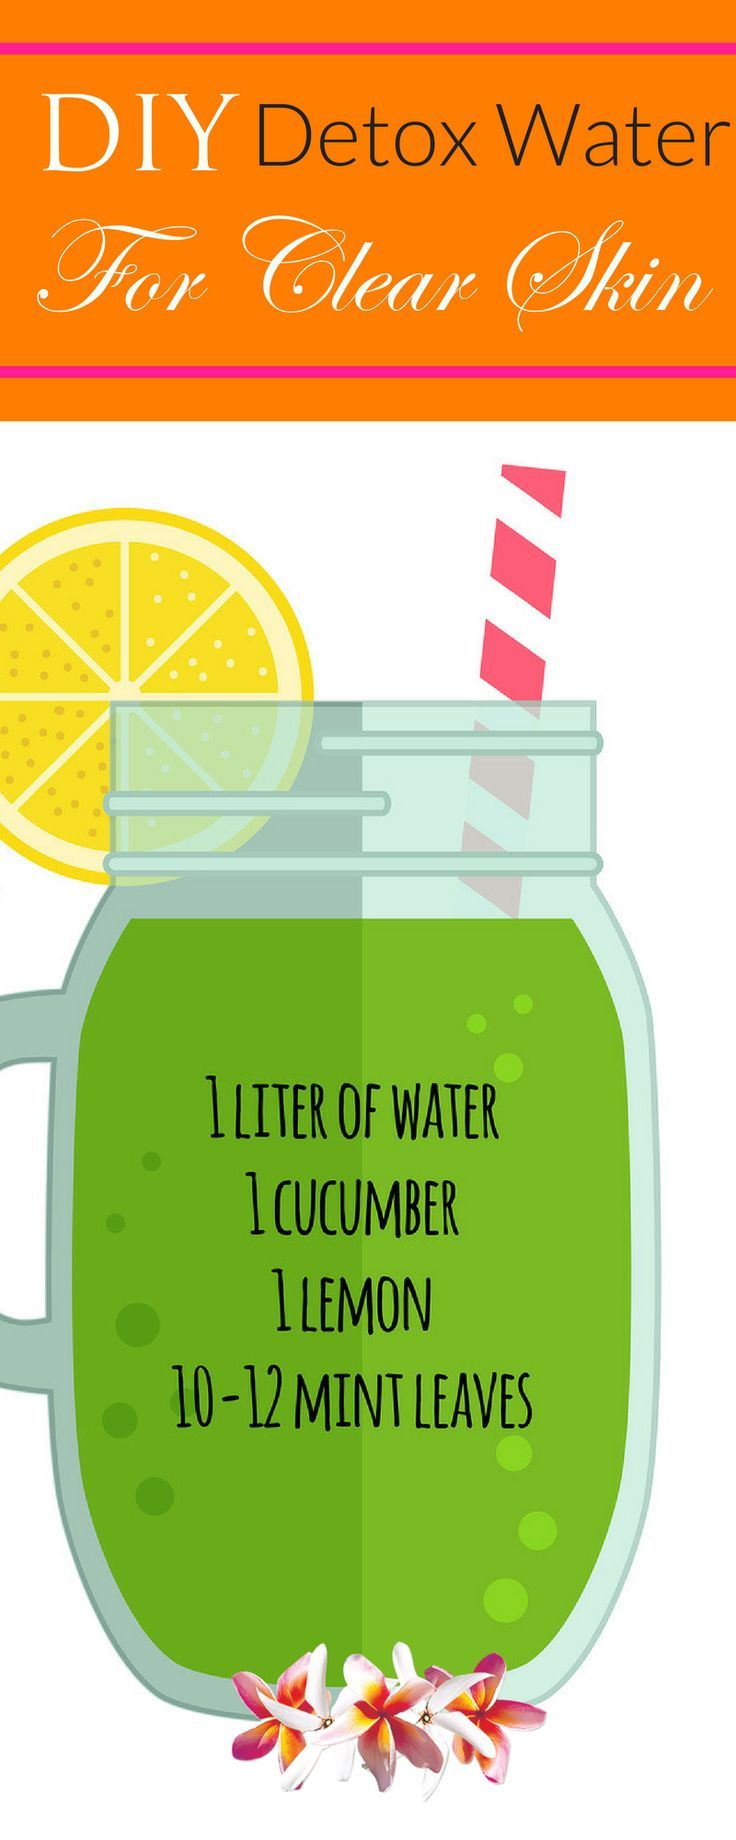 Detox water is the perfect way to get all the necessary nutrients for clear, glowing skin. Water alone is key to great skin as it flushes out toxins, delivers nutrients to your cells and keeps your cells hydrated. Learn 4 more detox water recipes for maintaining a healthy clear skin at http://www.purefiji.com/blog/drink-clear-glowing-skin/ | Beauty Tips